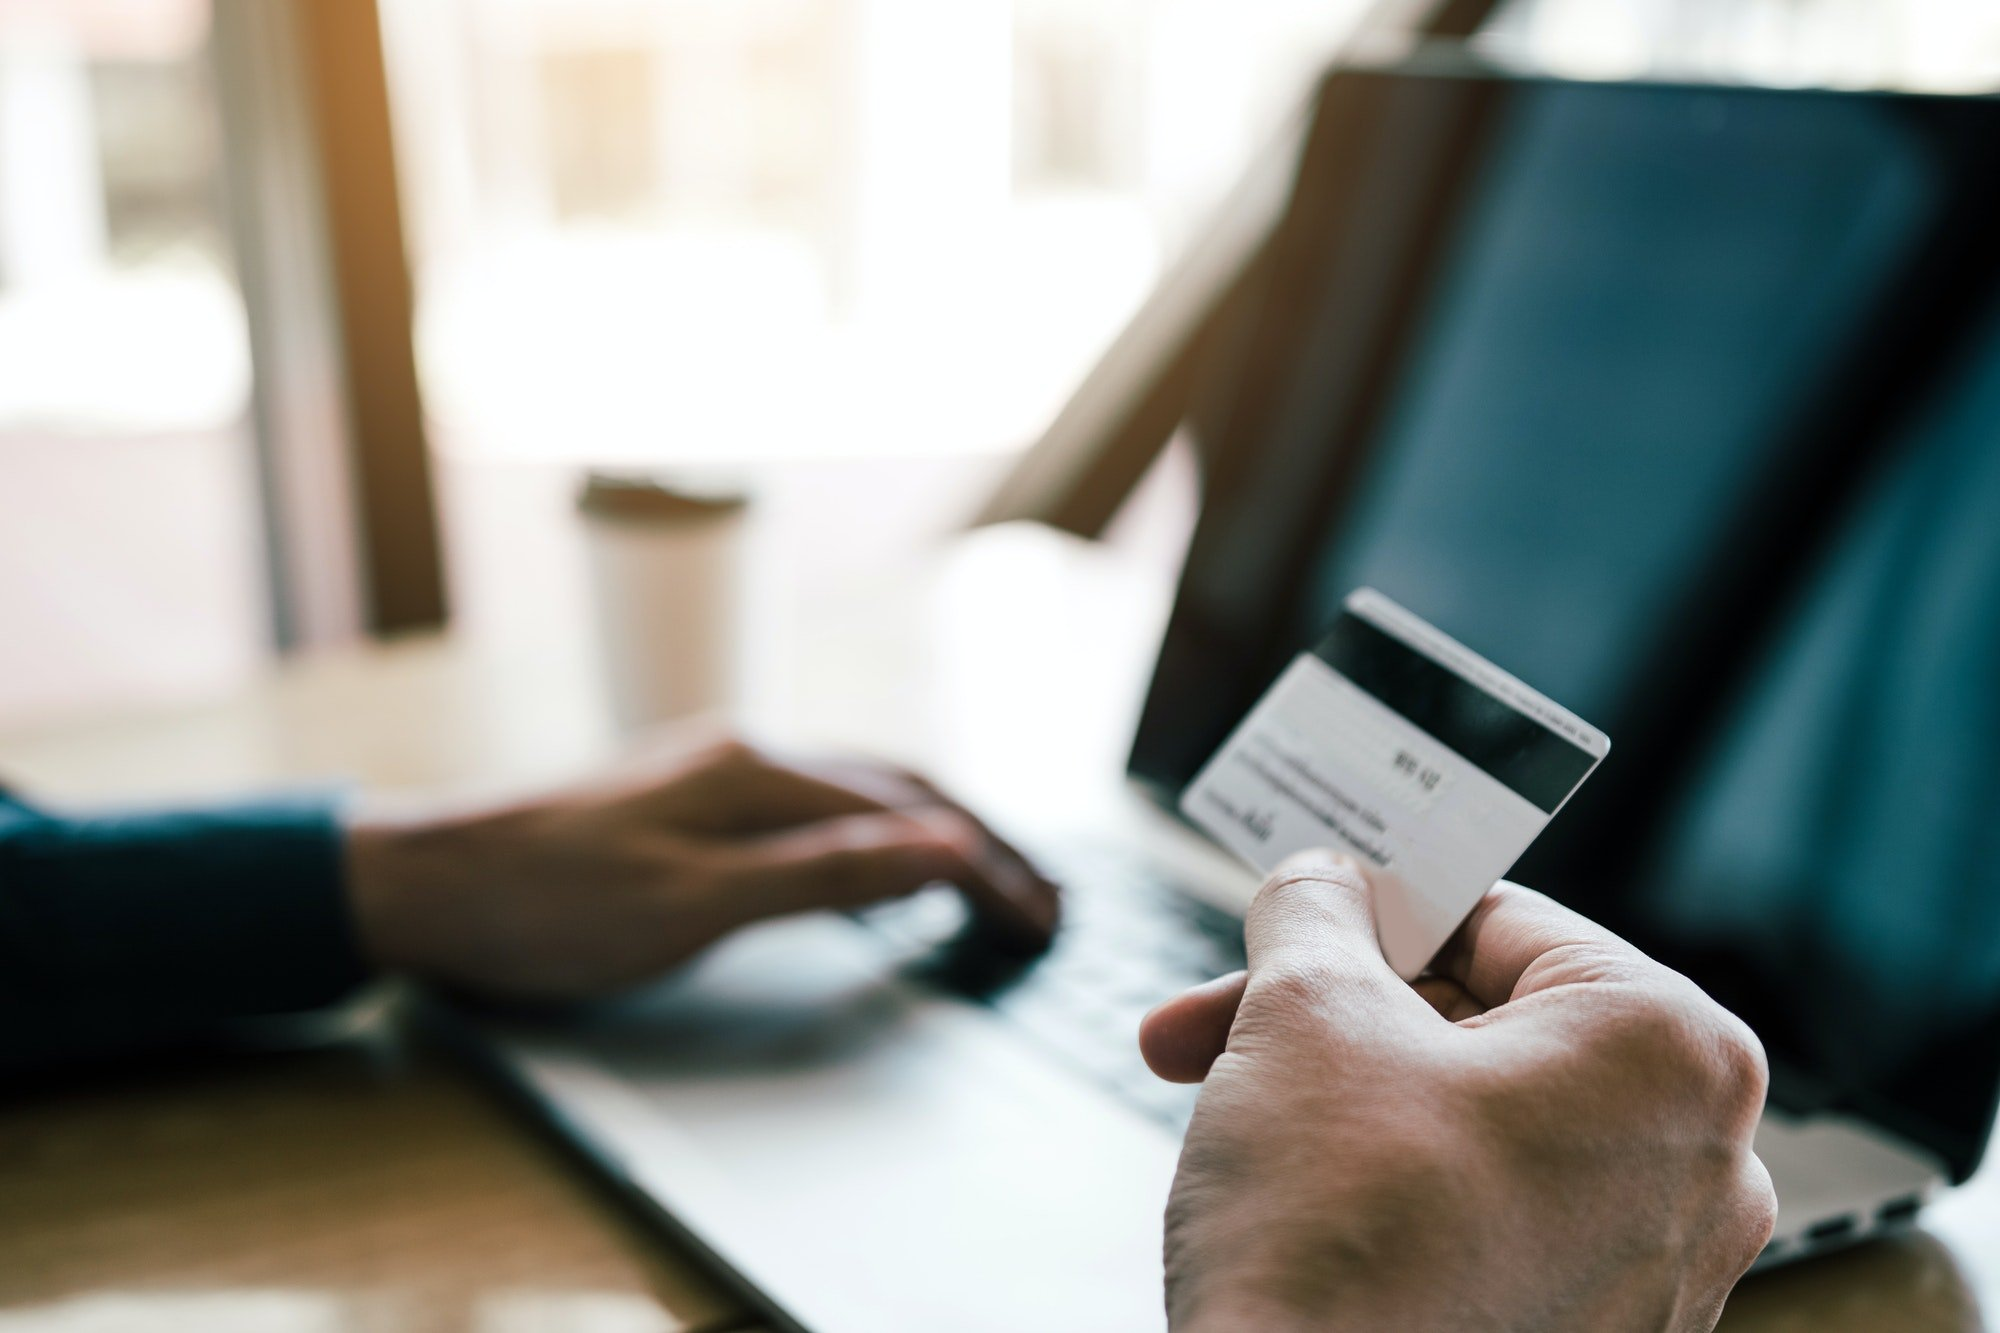 man are holding credit cards and using laptops computers are entering websites